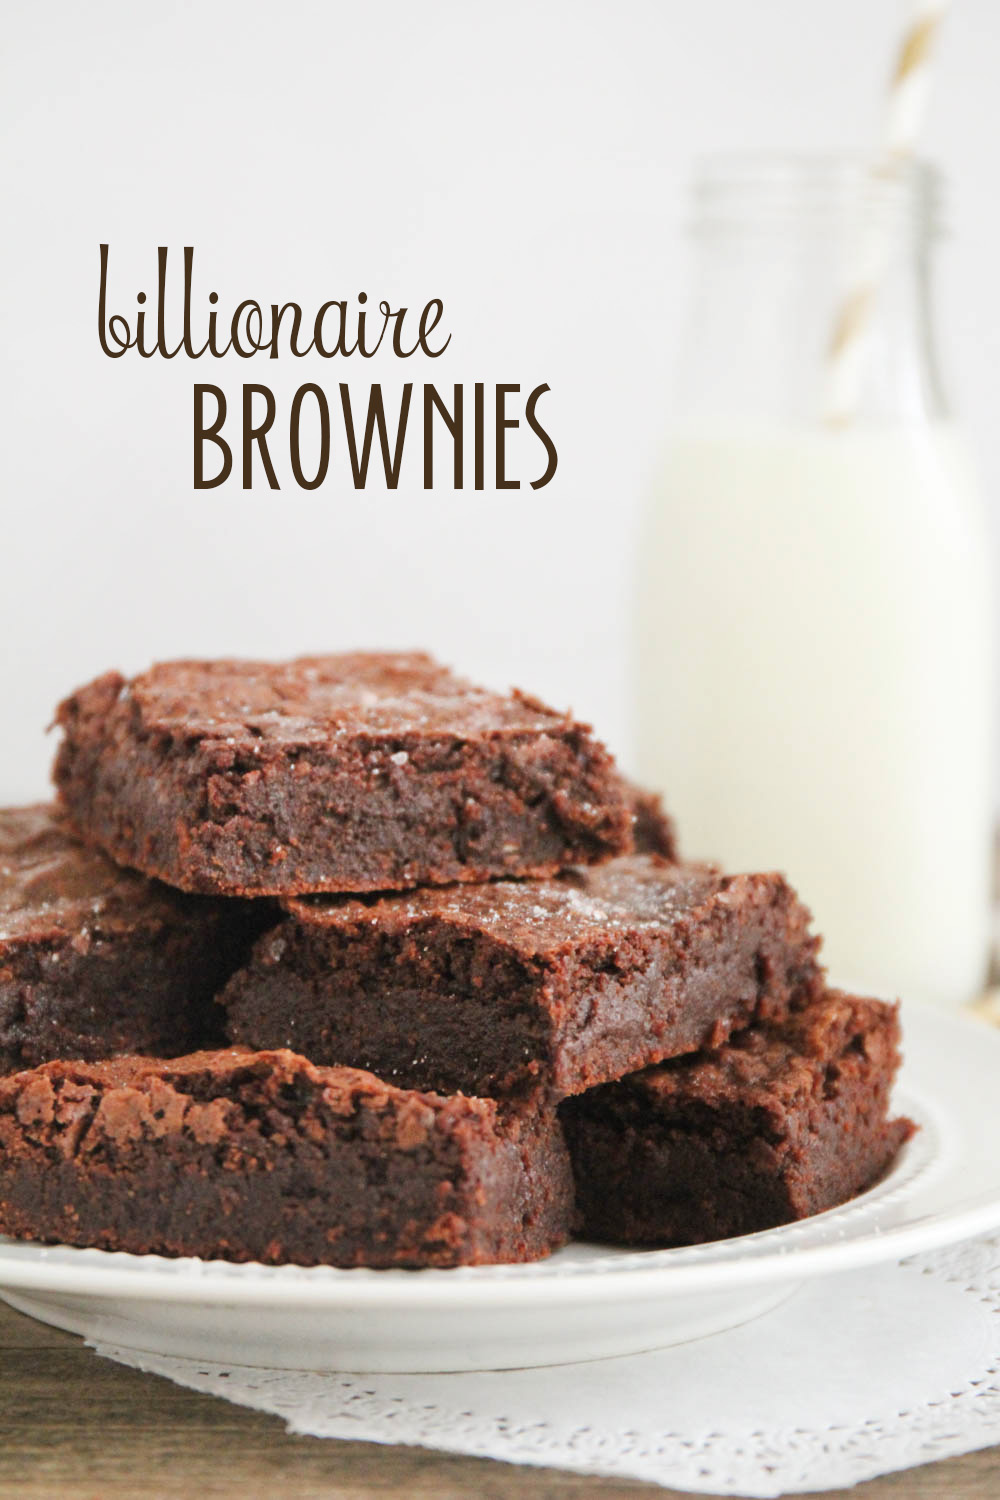 These billionaire brownies are amazing, life-changing, and over the top decadent. So rich and chocolatey, dense and fudgy, and just all around perfect!